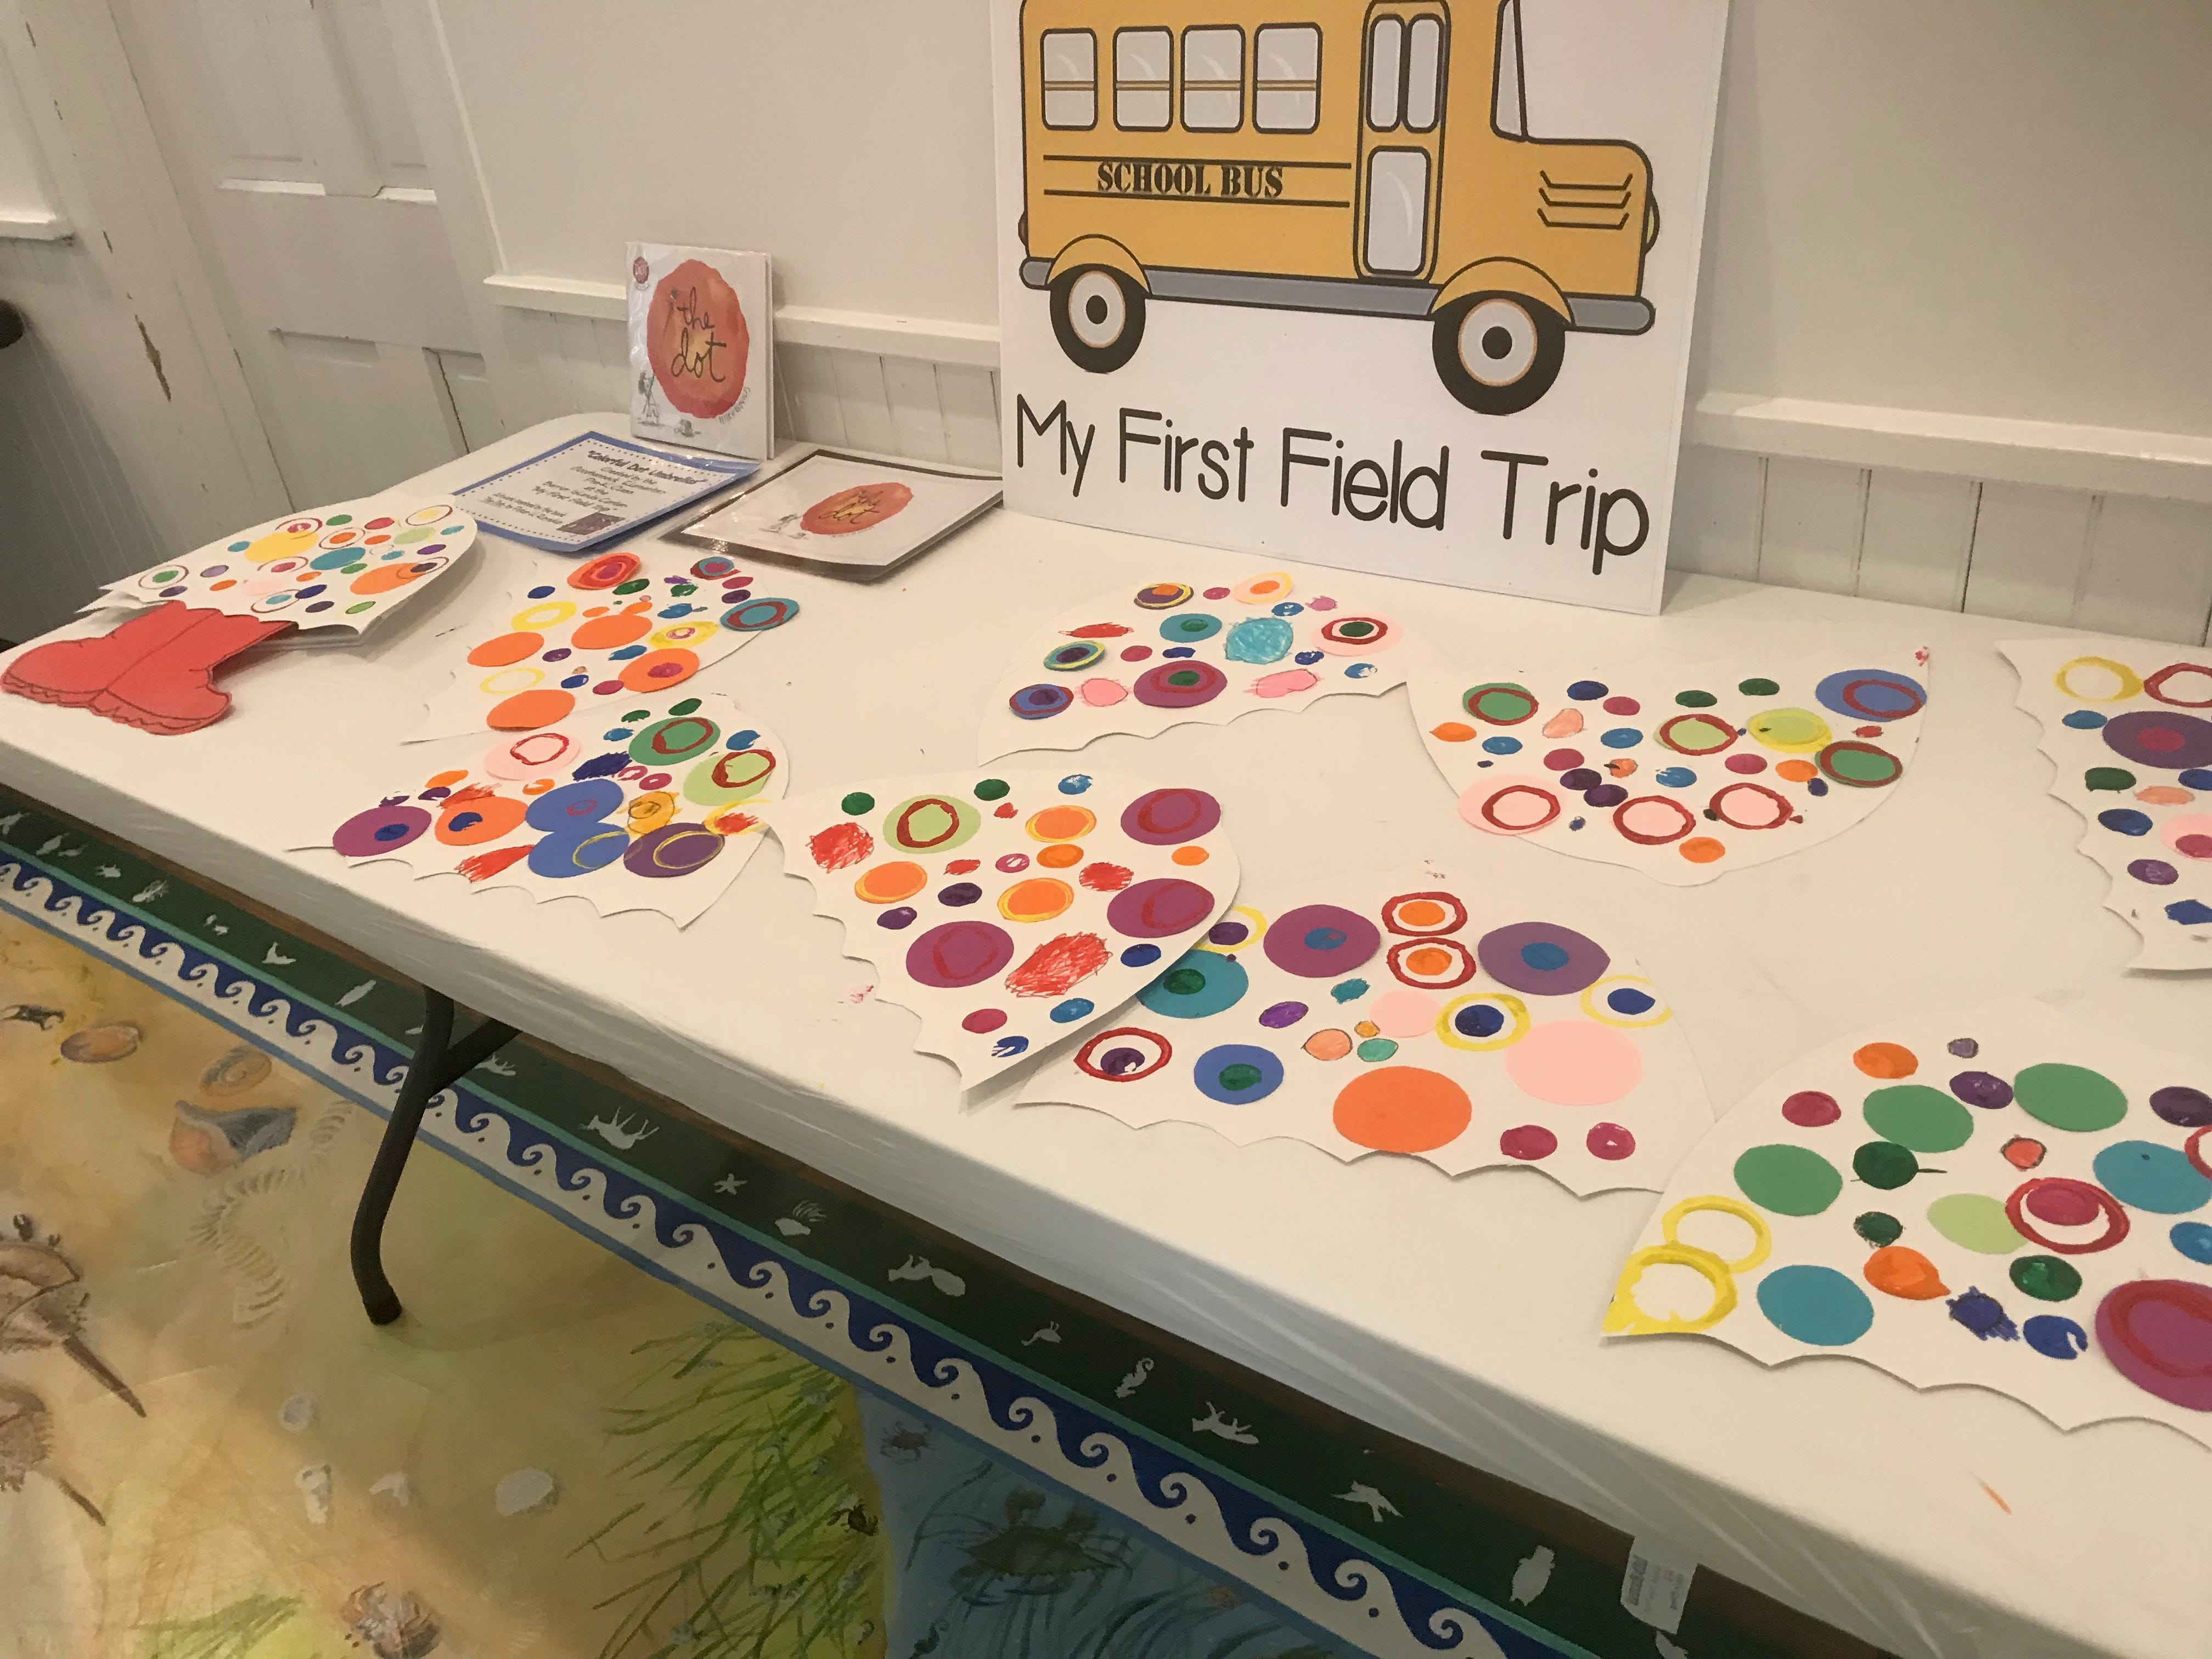 A table at the Barrier Islands Center holds colorful paper umbrellas created by Occohannock Elementary School pre-kindergarten students during a My First Field Trip event on Tuesday, March 26, 3019 in Machipongo, Virginia.